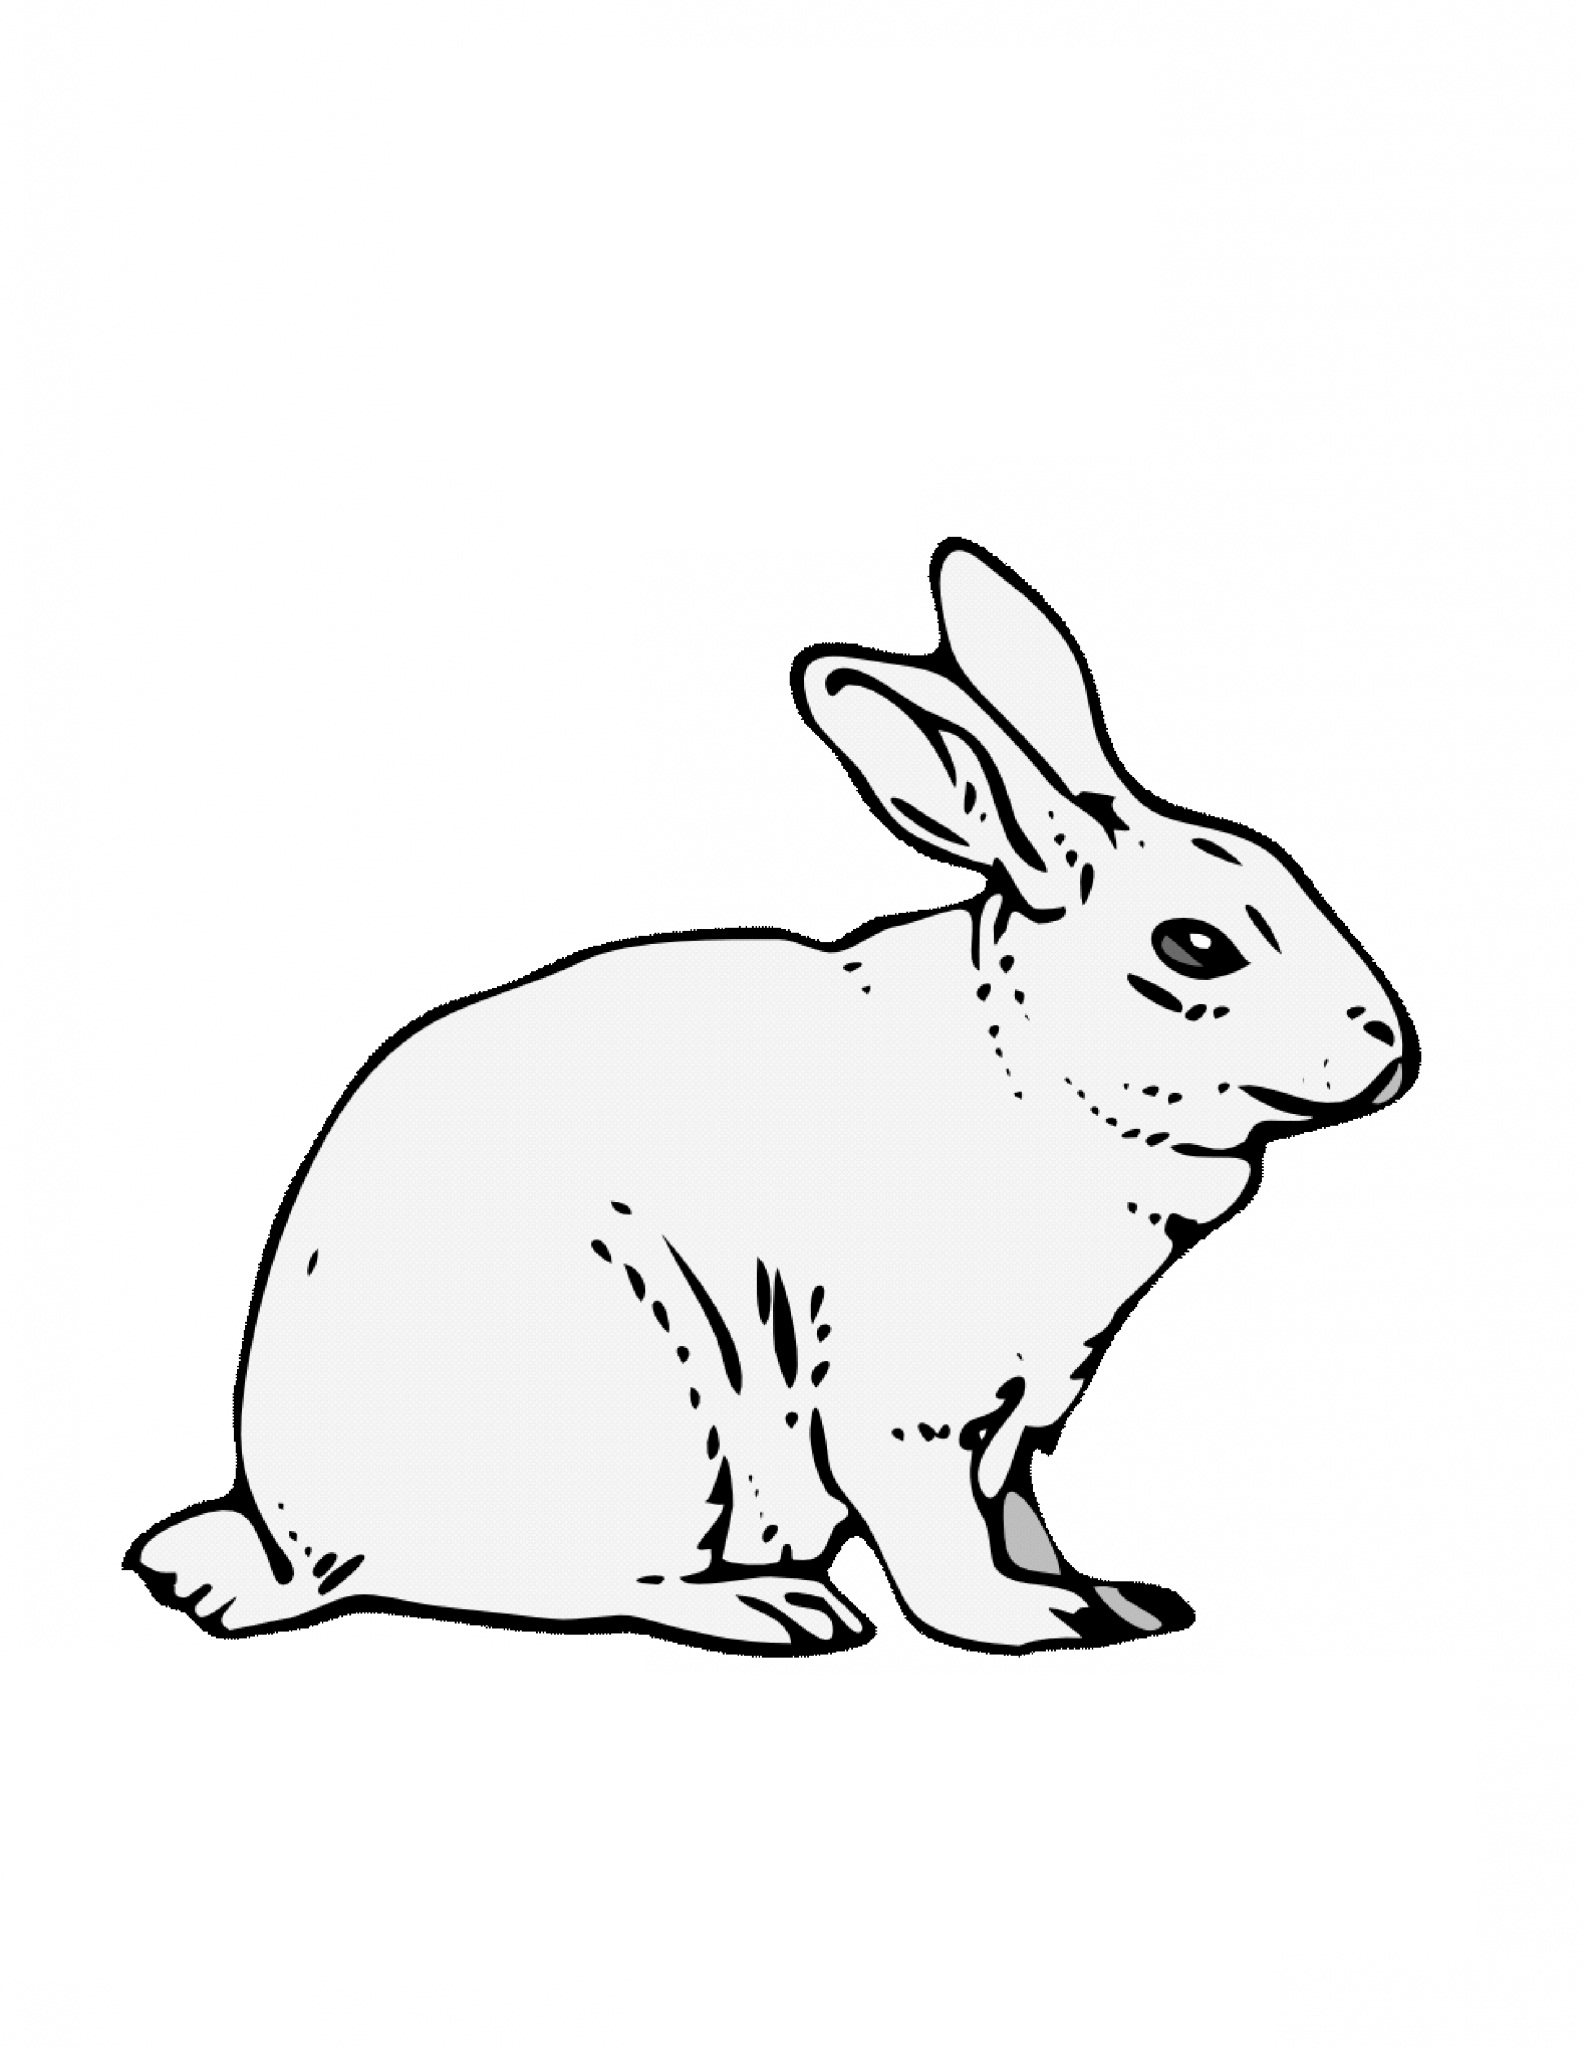 rabbit coloring for kids free rabbit coloring pages rabbit coloring kids for